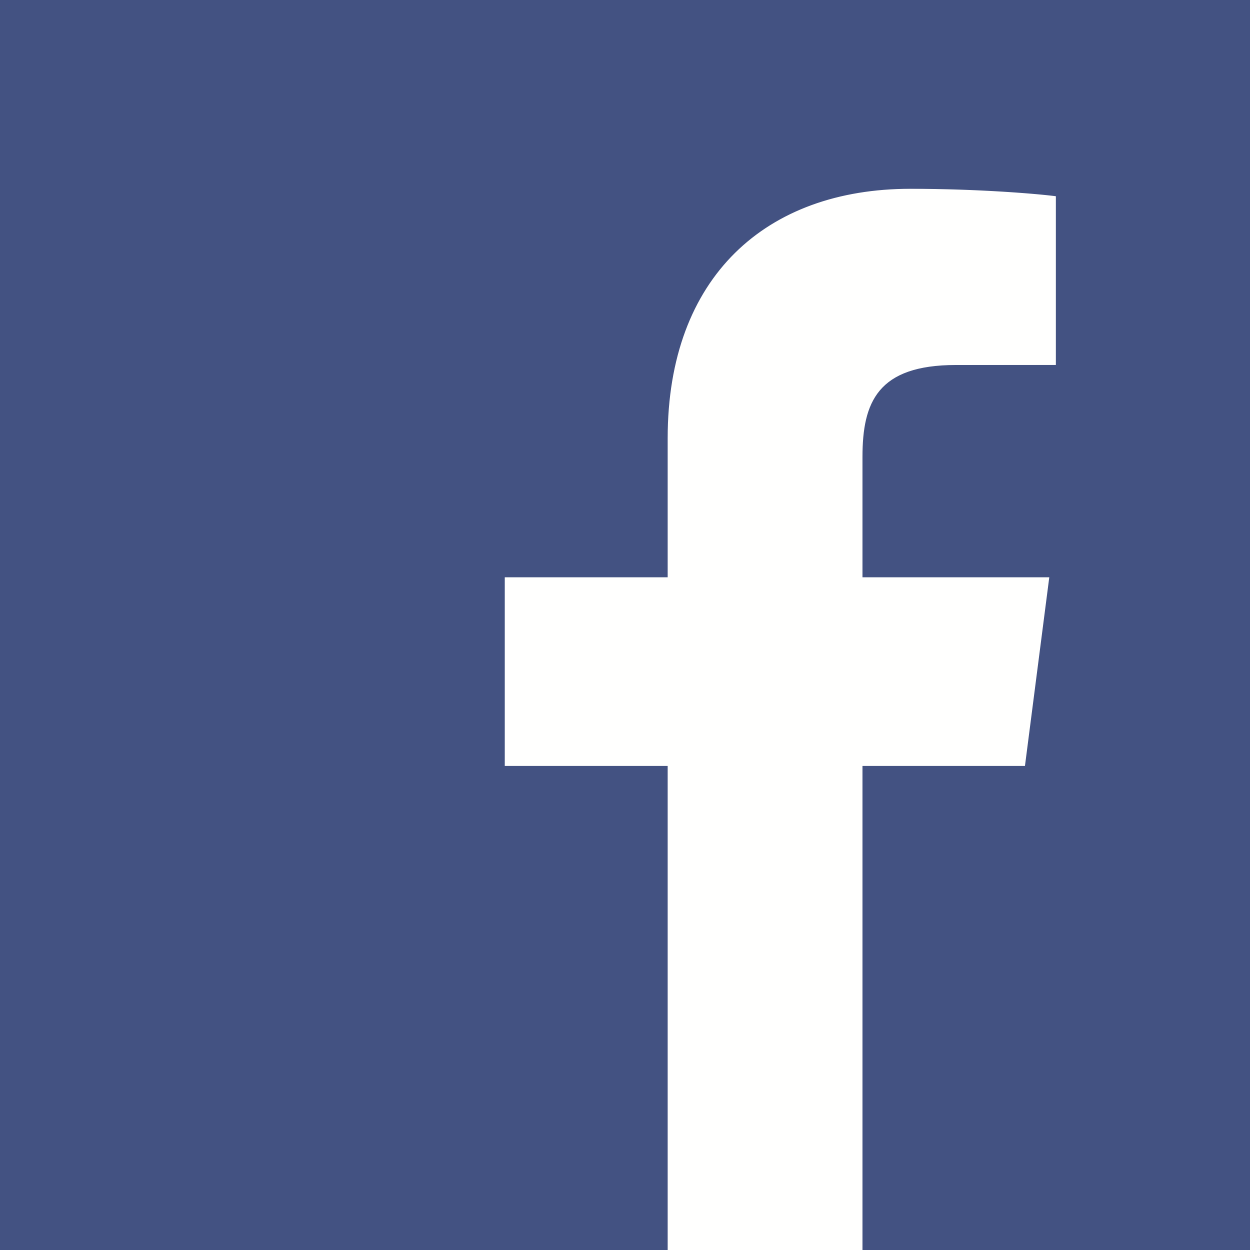 Image result for white facebook logo